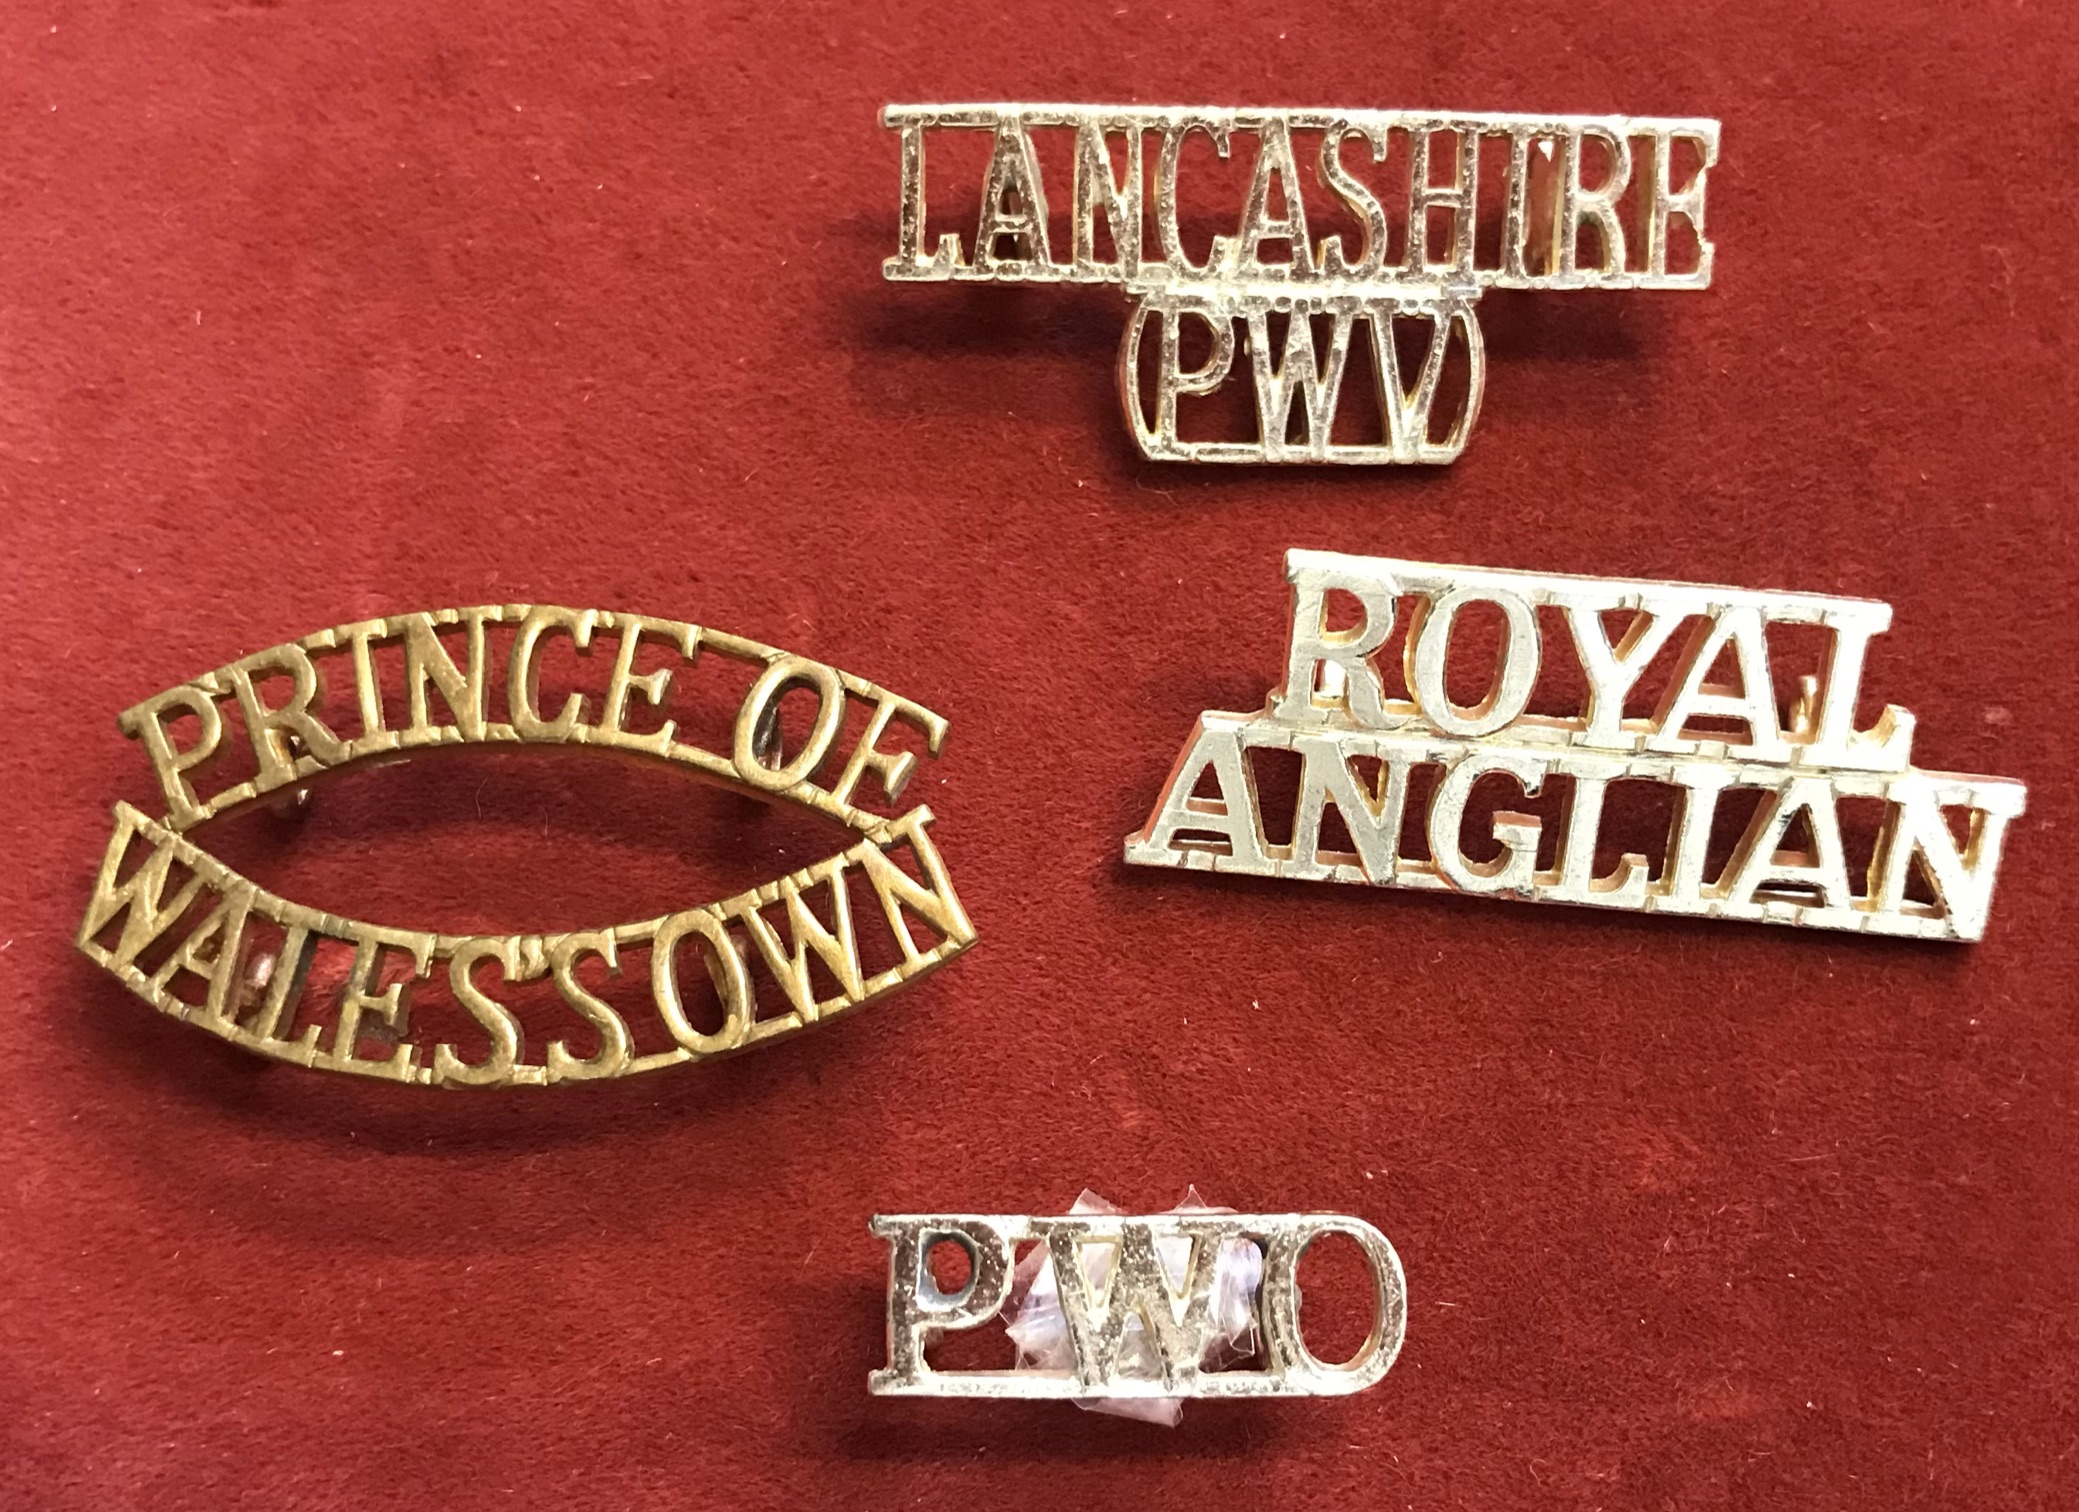 British Shoulder Titles (4) including: Prince of Wales's Own, Royal Anglian, Lancashire (PWV) (in